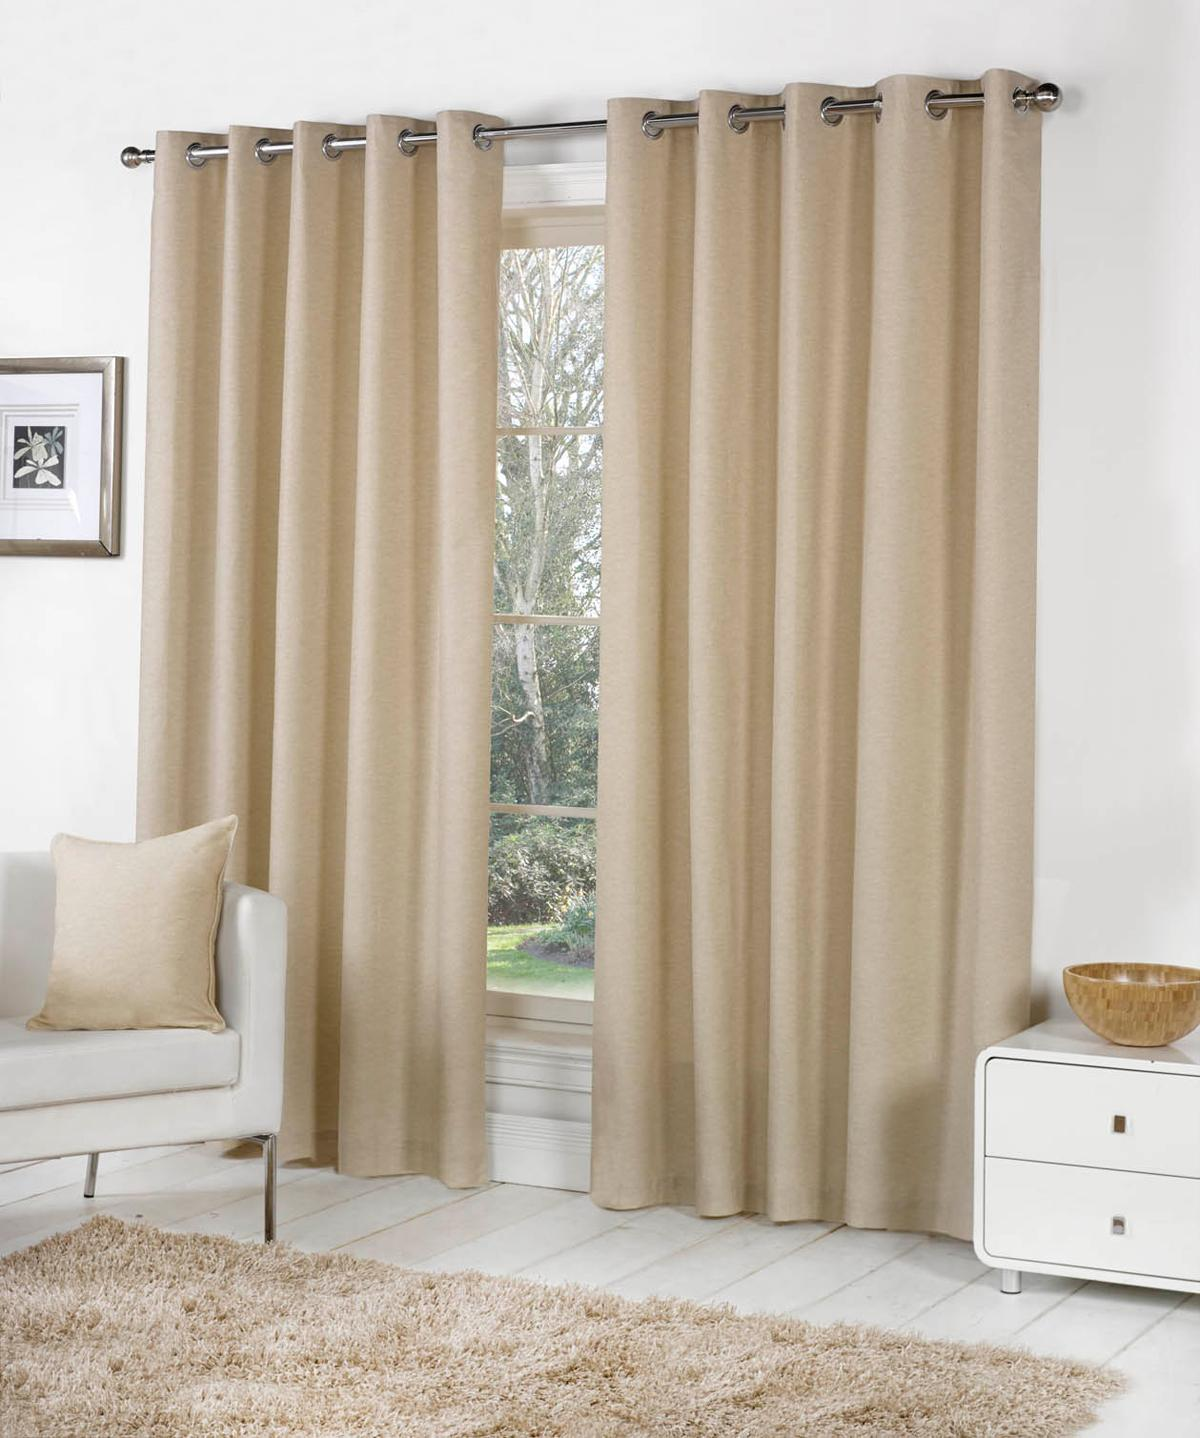 Stockists of Natural Sorbonne Ready Made Lined Eyelet Curtains